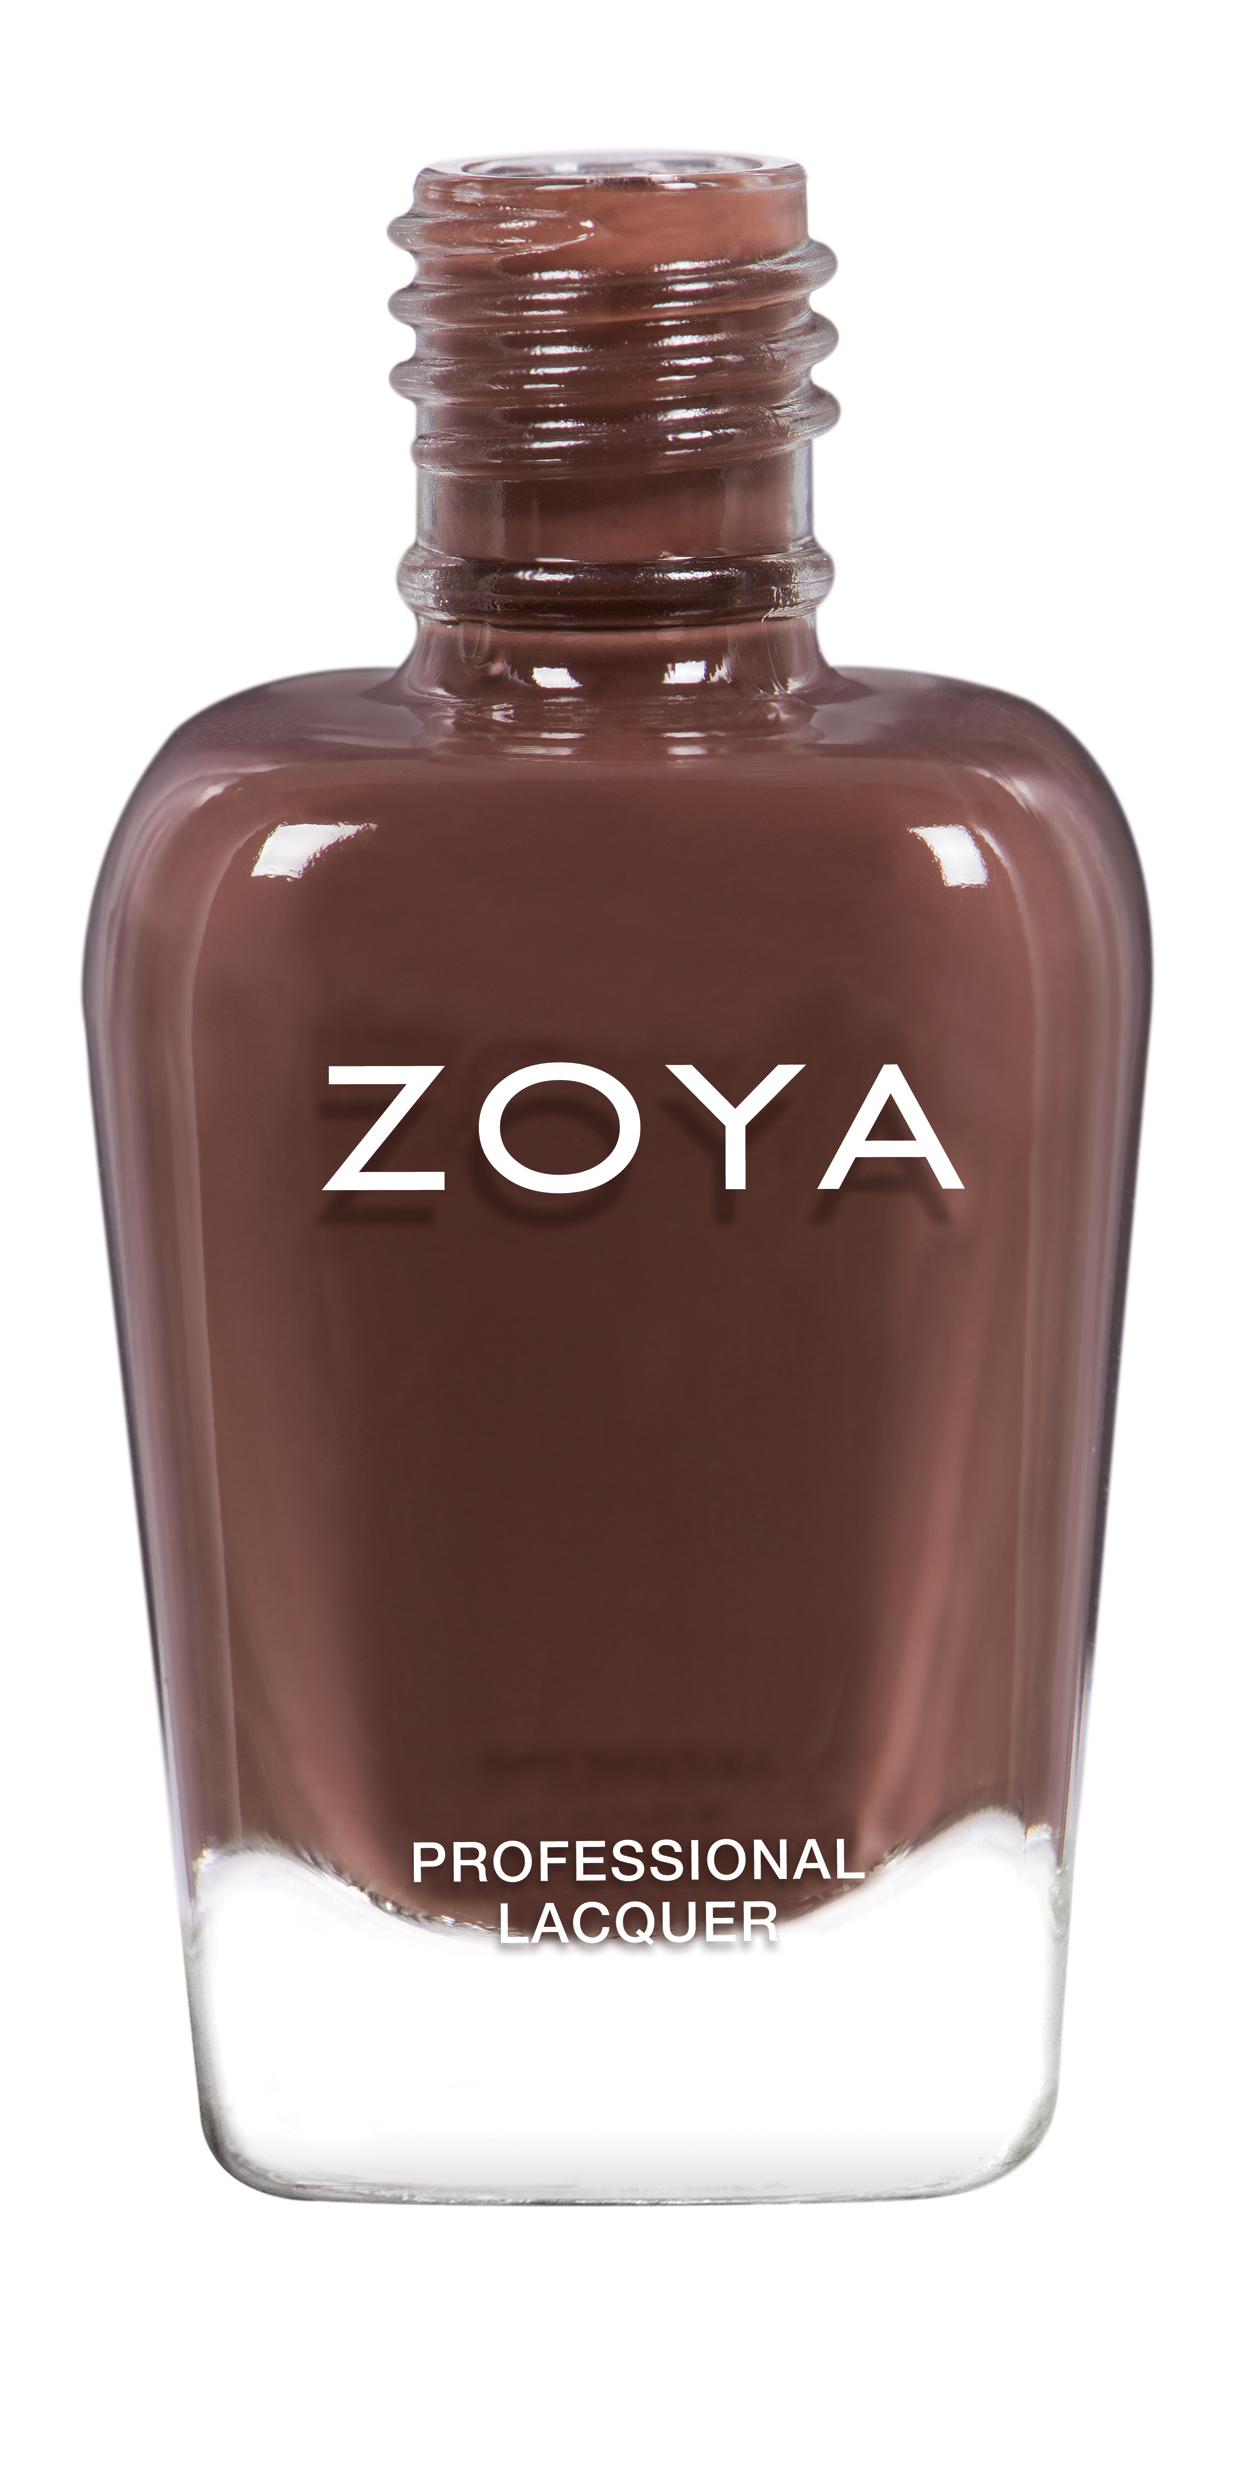 Zoya Naturel 3 Collection Zoya Gina